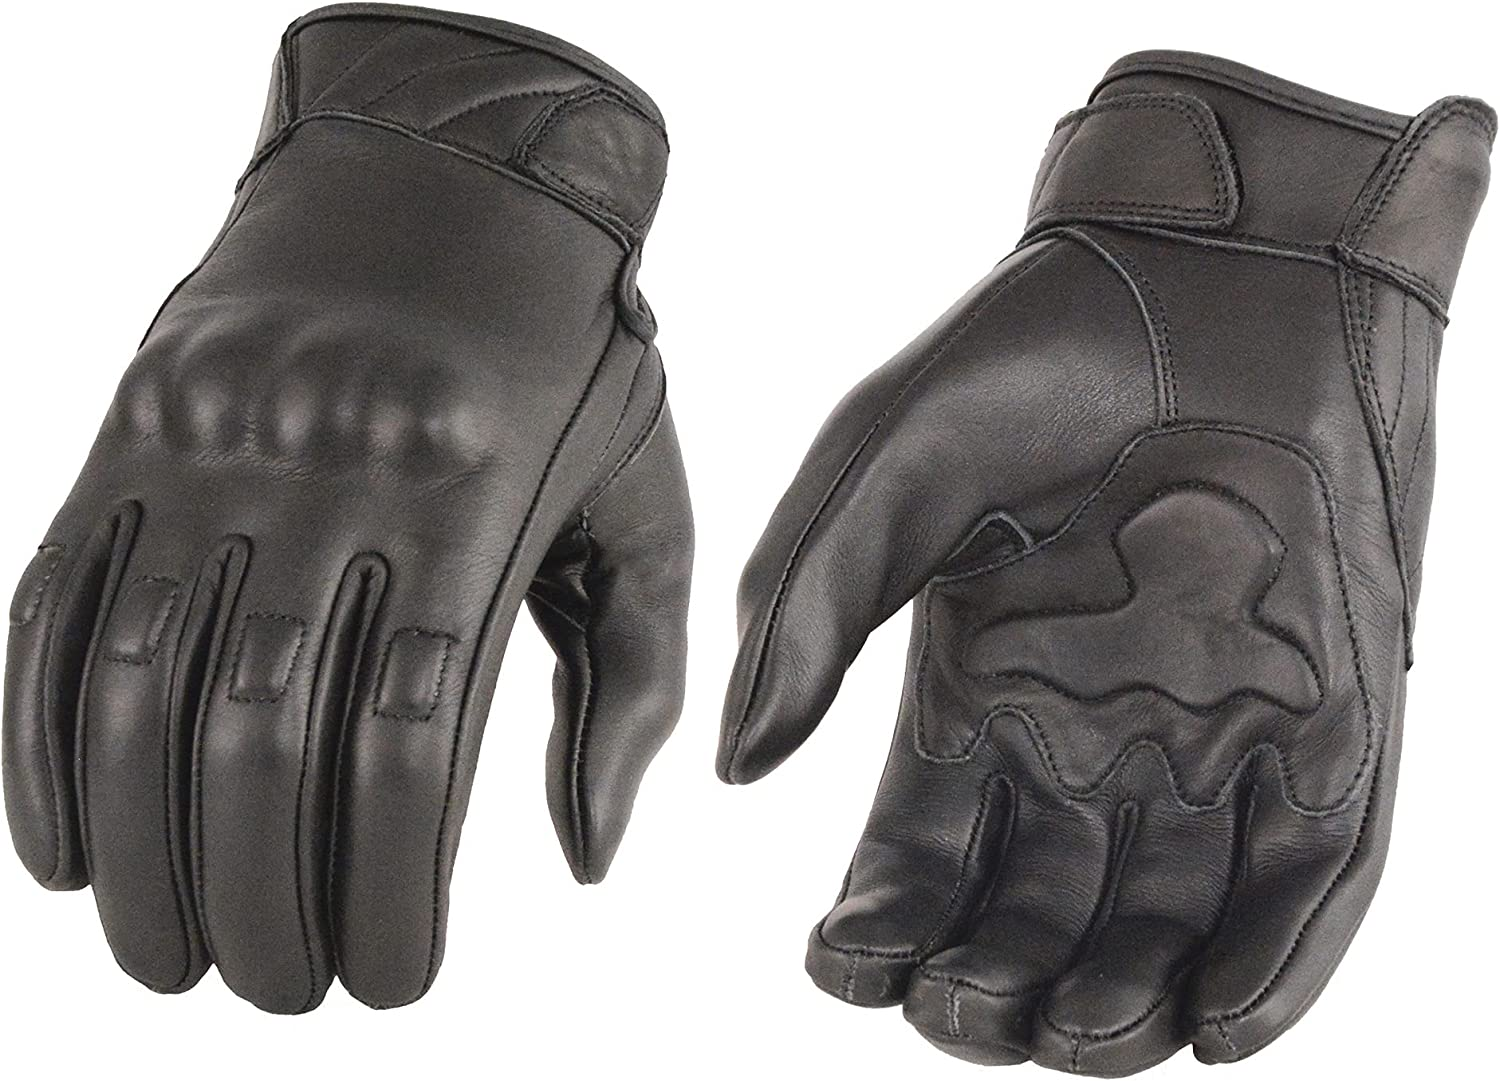 Milwaukee Leather Men's Black Knu Gloves Rubberized with Clearance SALE! Limited time! Award